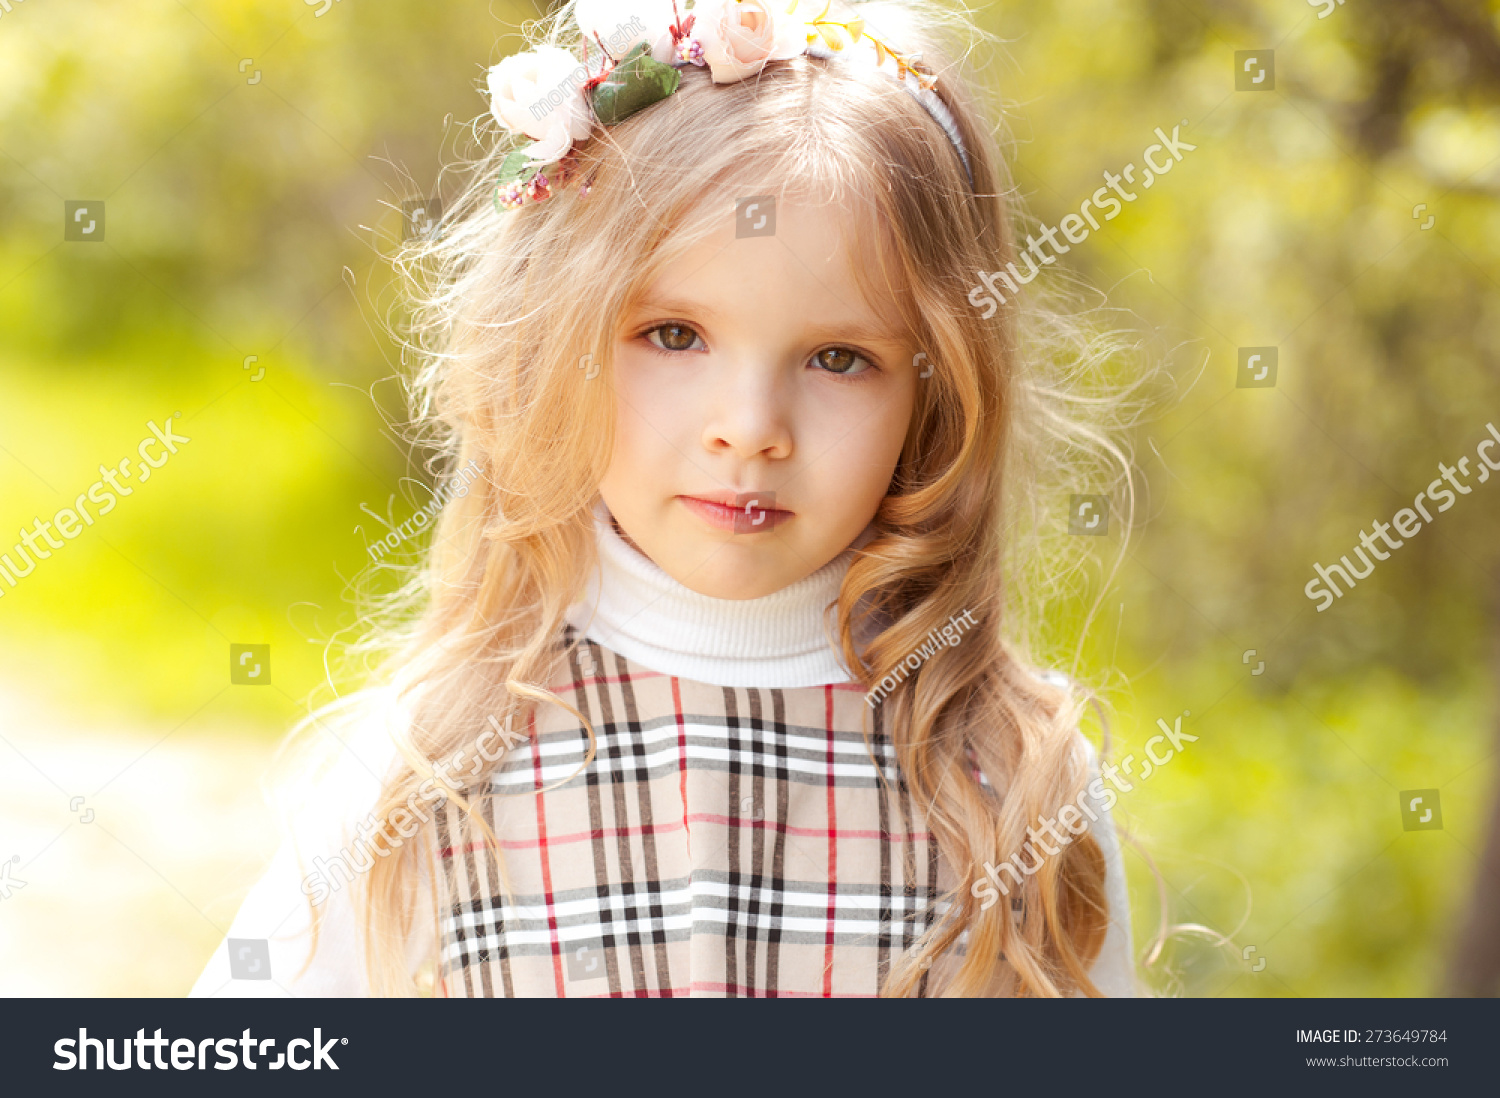 cute baby girl 34 year old stock photo (edit now) 273649784